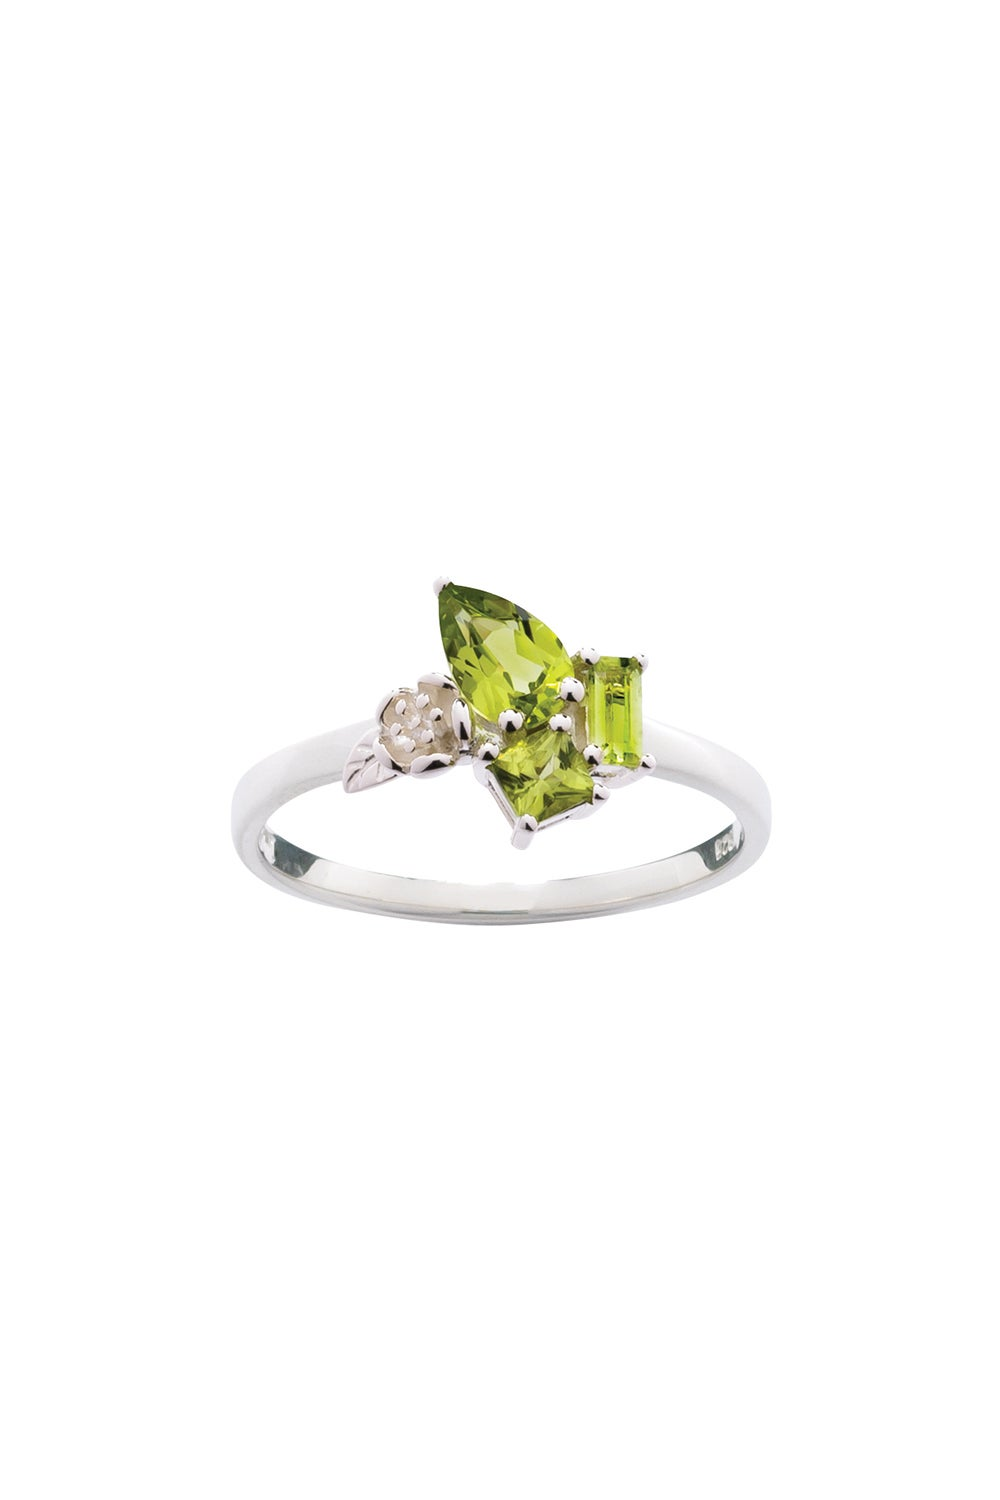 Rock Garden Mini Ring Silver & Peridot